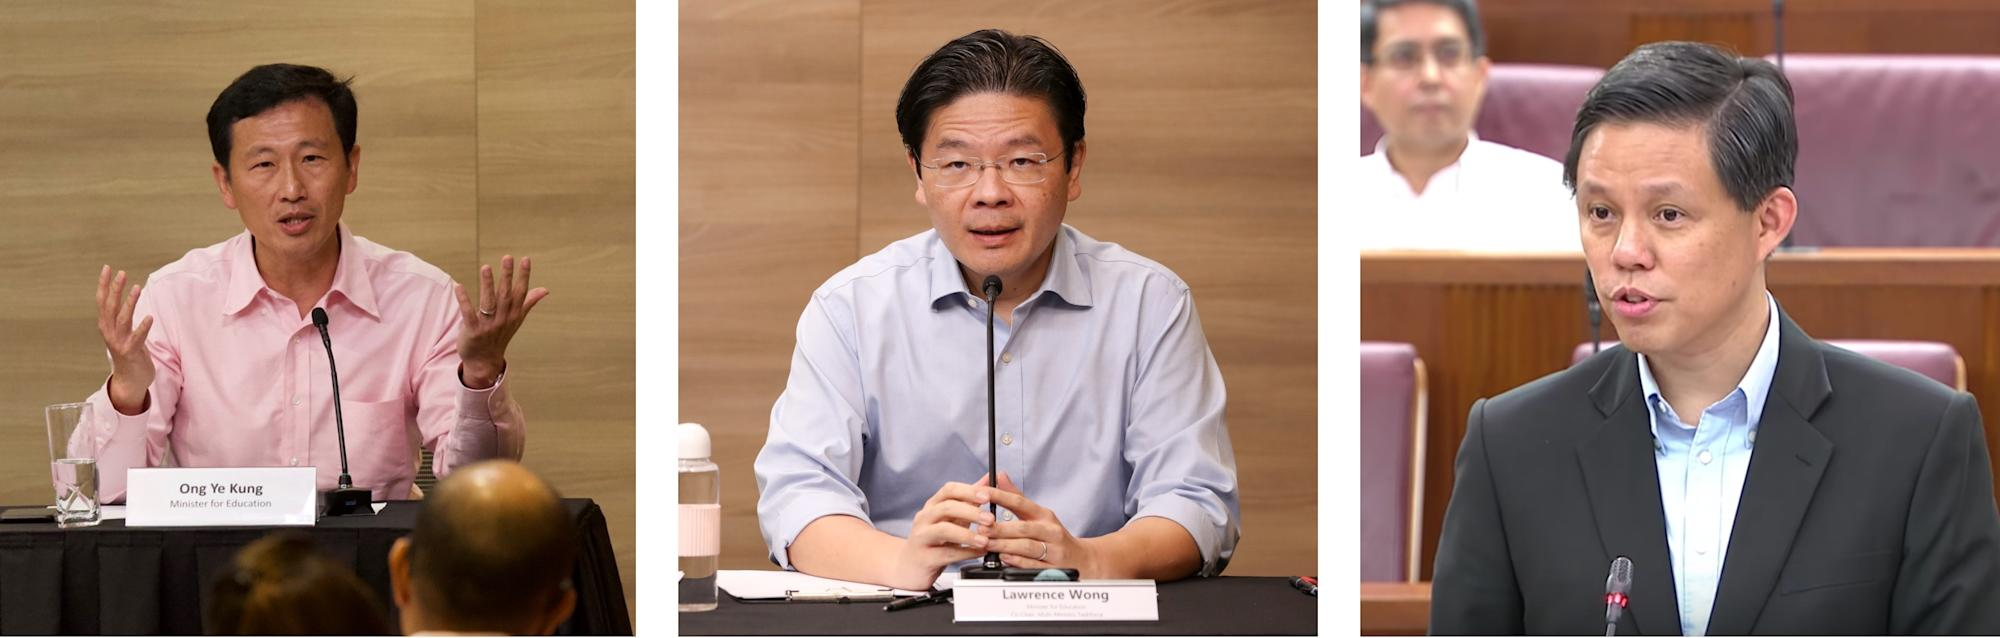 Singapore's 4G leadership race: Will it be Ong, Wong or Chan?